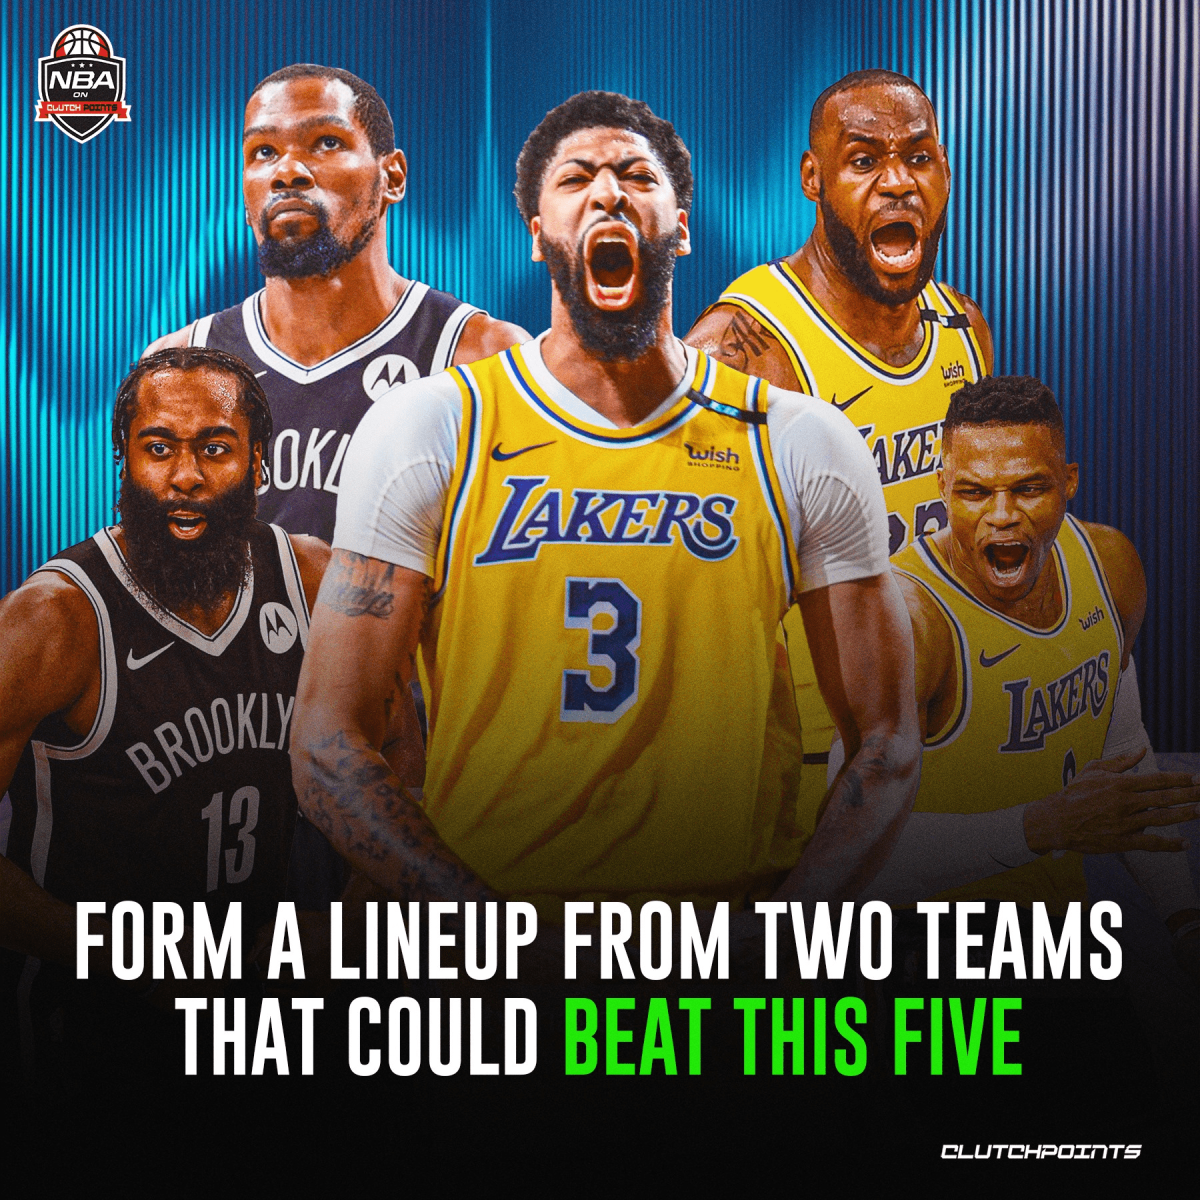 NBA Fans Try To Form A 5-Man Lineup From 2 NBA Teams That Could Beat The Lakers And Nets Combined Superteam